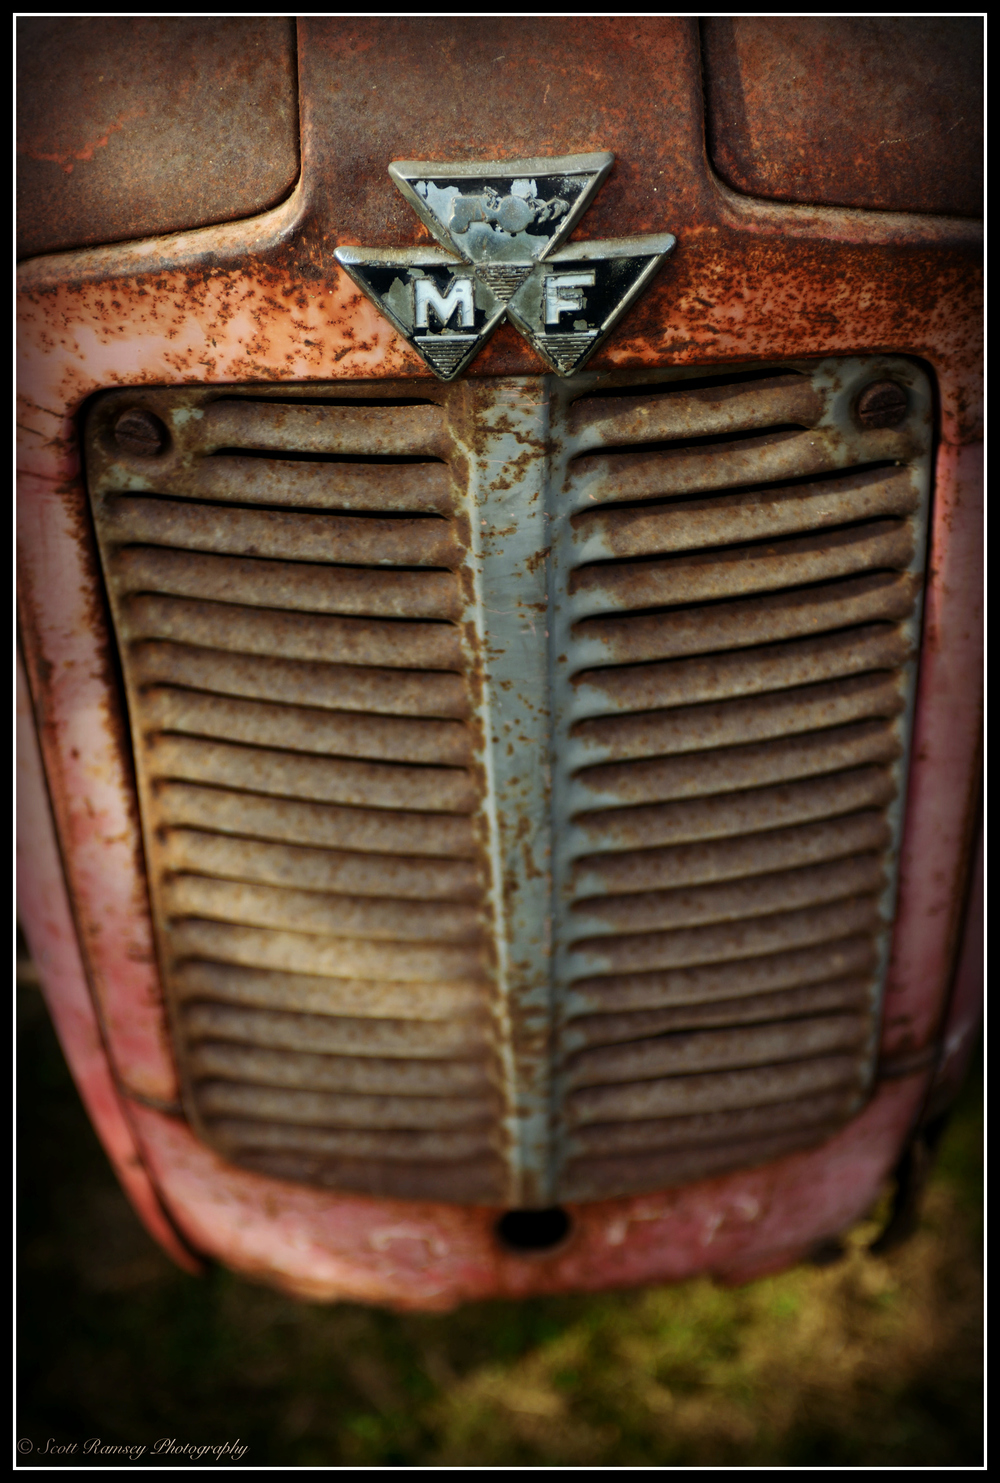 The front of a rusty old red vintage Massey Ferguson Tractor.